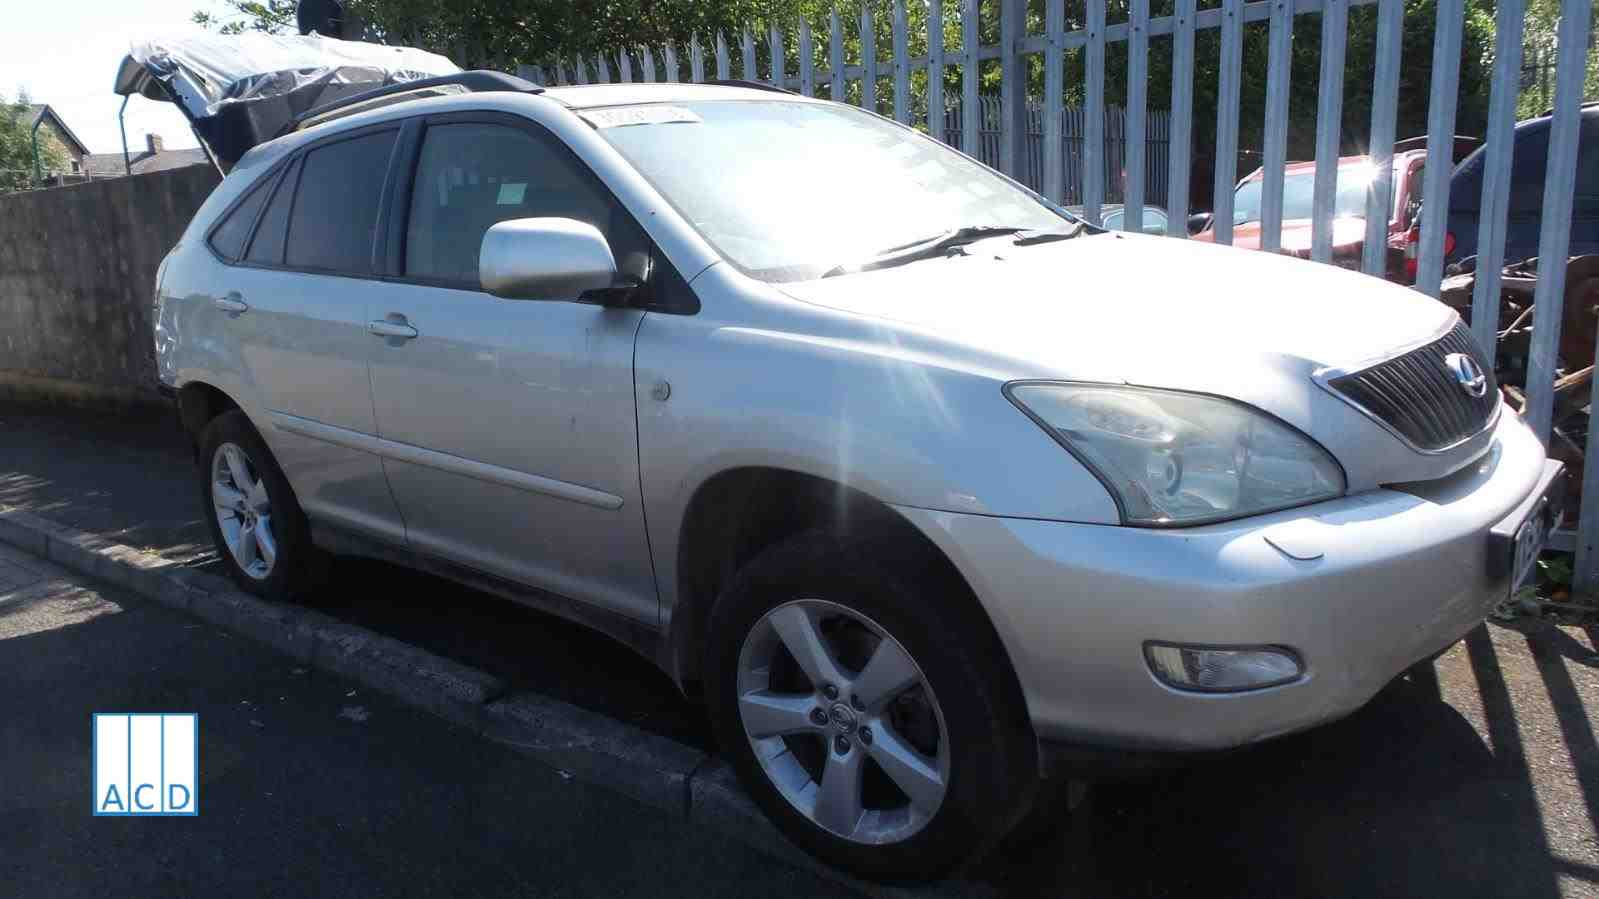 Lexus RX300 SE A 3.0L Petrol 5-Speed Automatic 2004 #2540